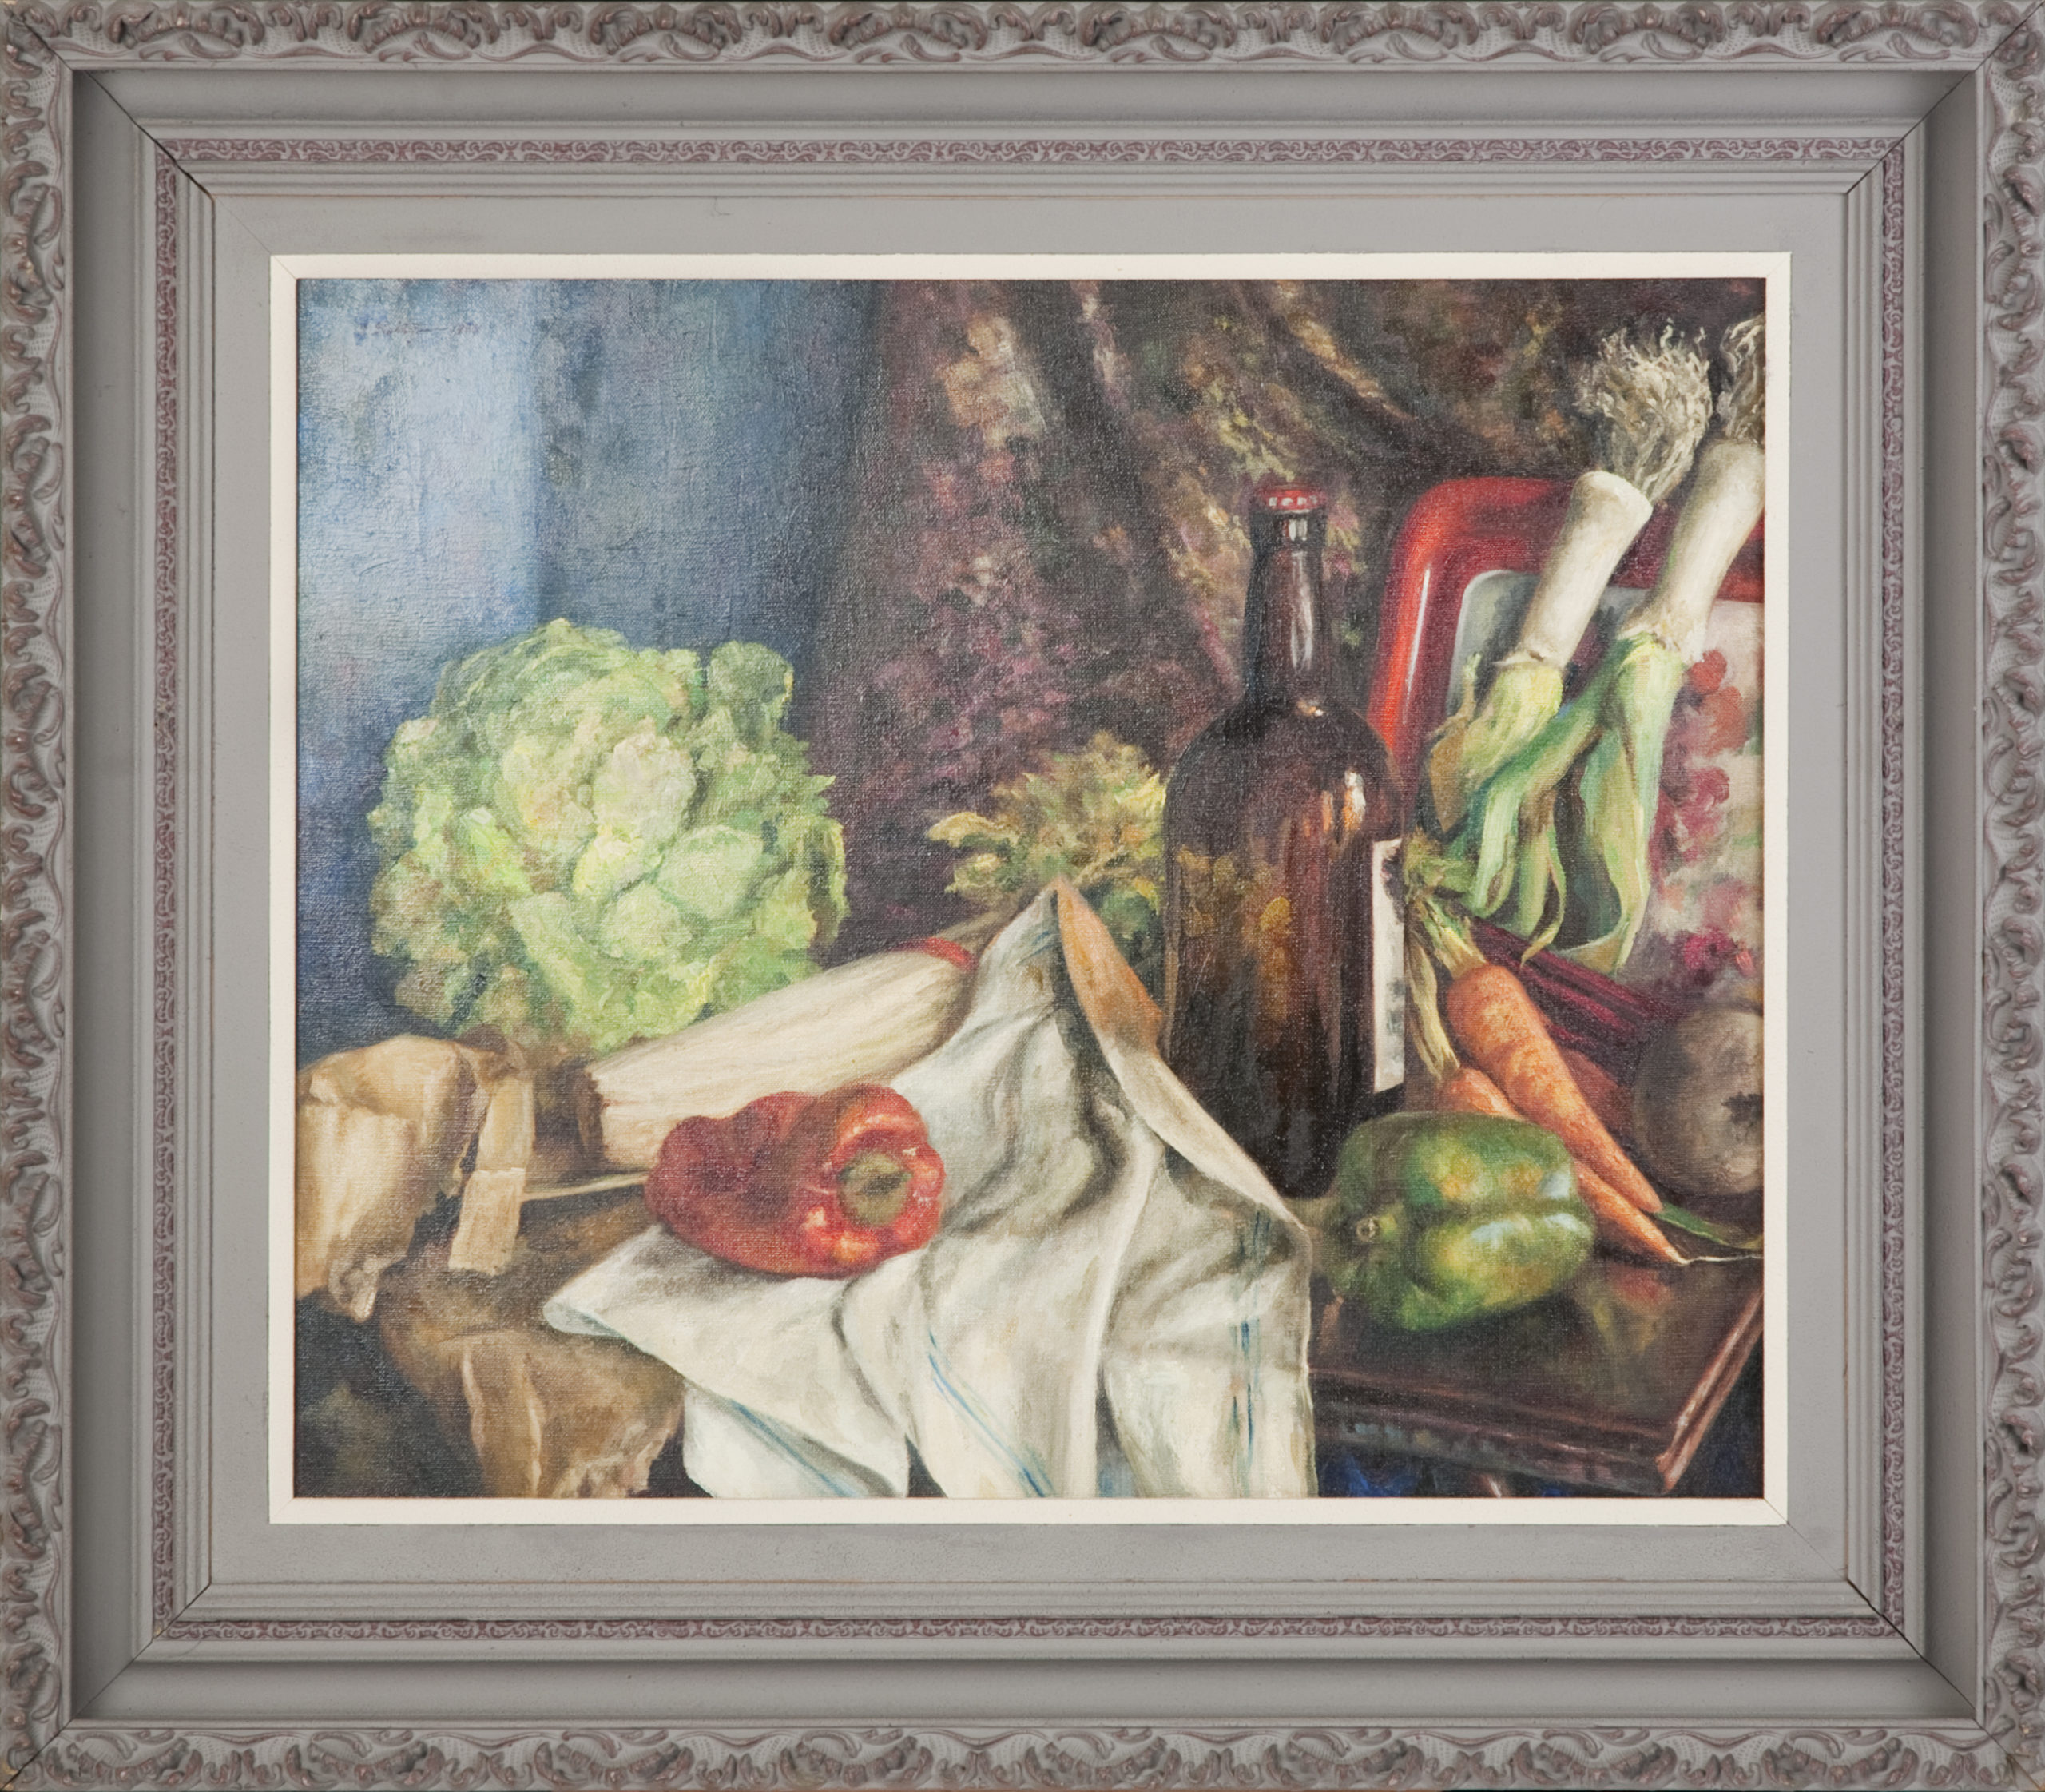 263 Still Life with Beer Bottle and Vegetables 1950 - Oil on Canvas - 25.5 x 22.75 - Frame: 32 x 28 x 3